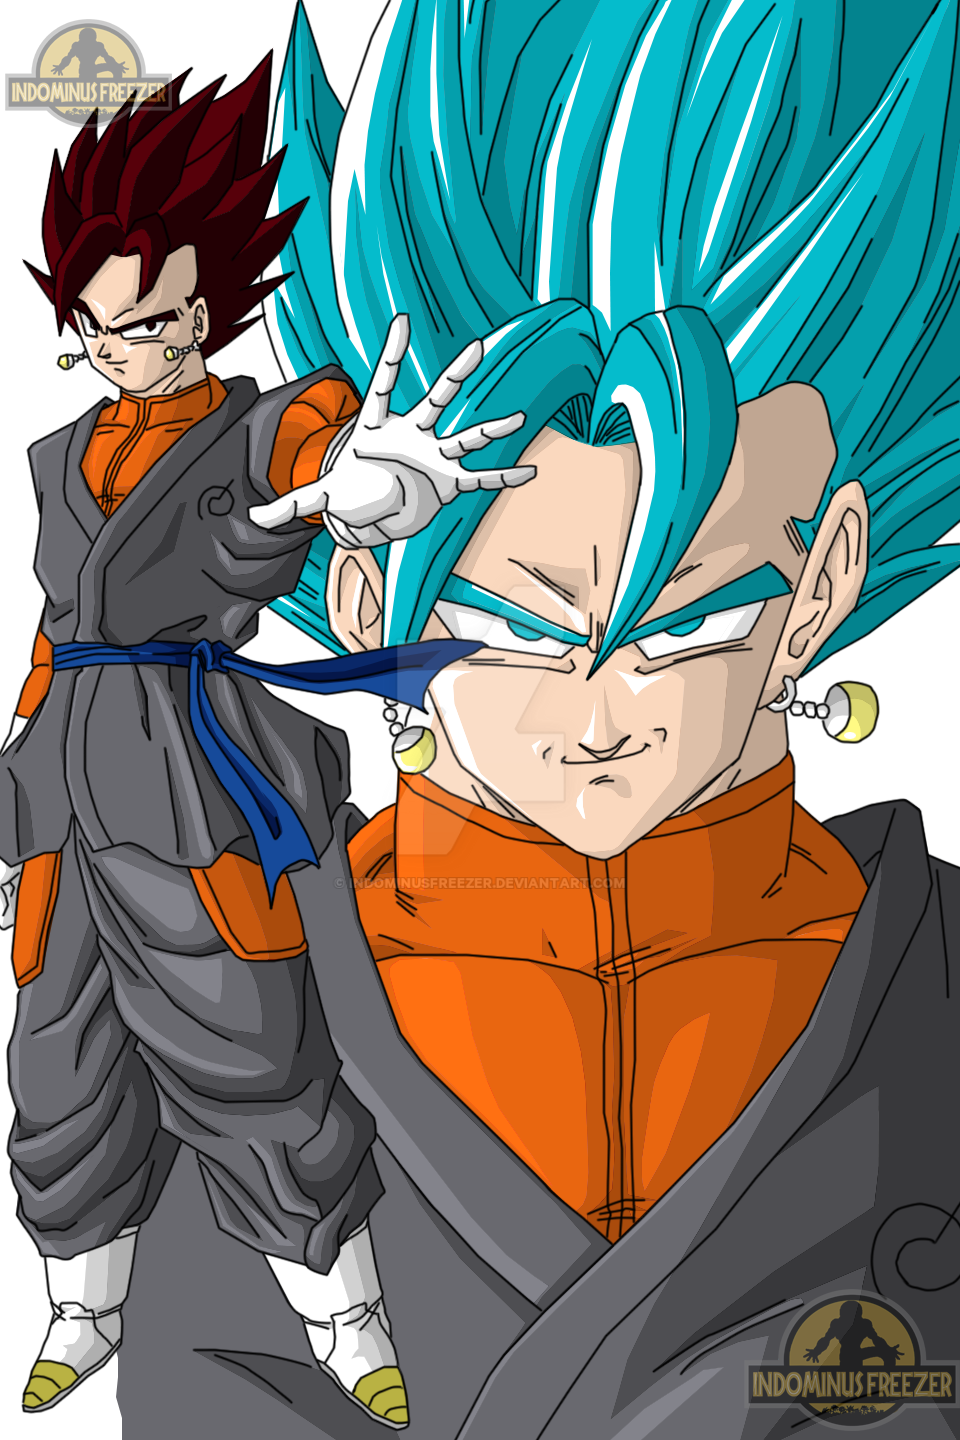 [Model Con Amxx] Vegetto Fukkatsu No F by gonza_esf  - Página 3 Vegetto_ssjgb_indominus_freezer_by_indominusfreezer-daahz0r